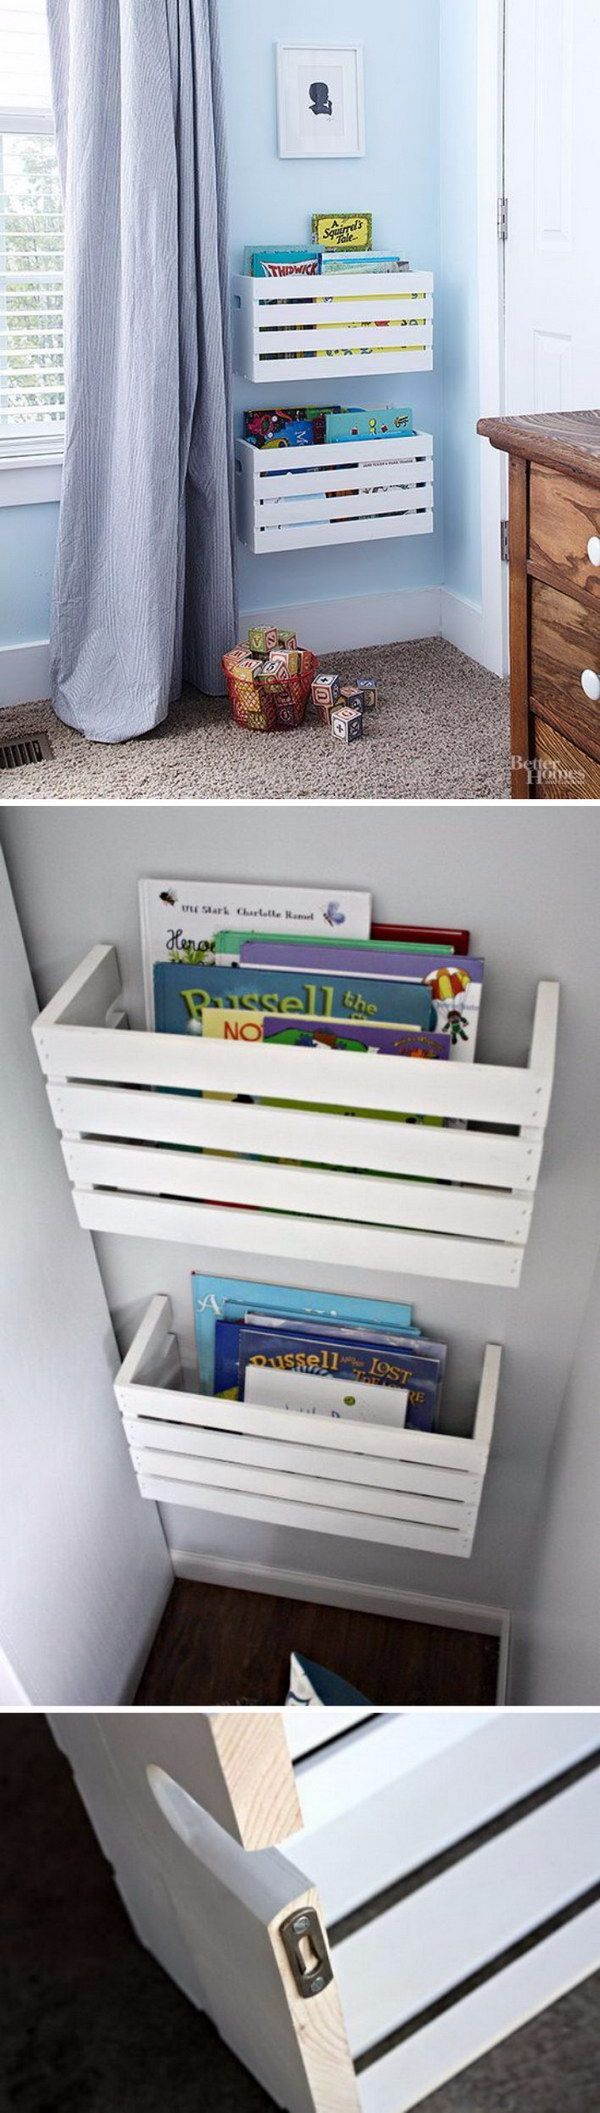 best images about nursery on pinterest cute baby boy lilac